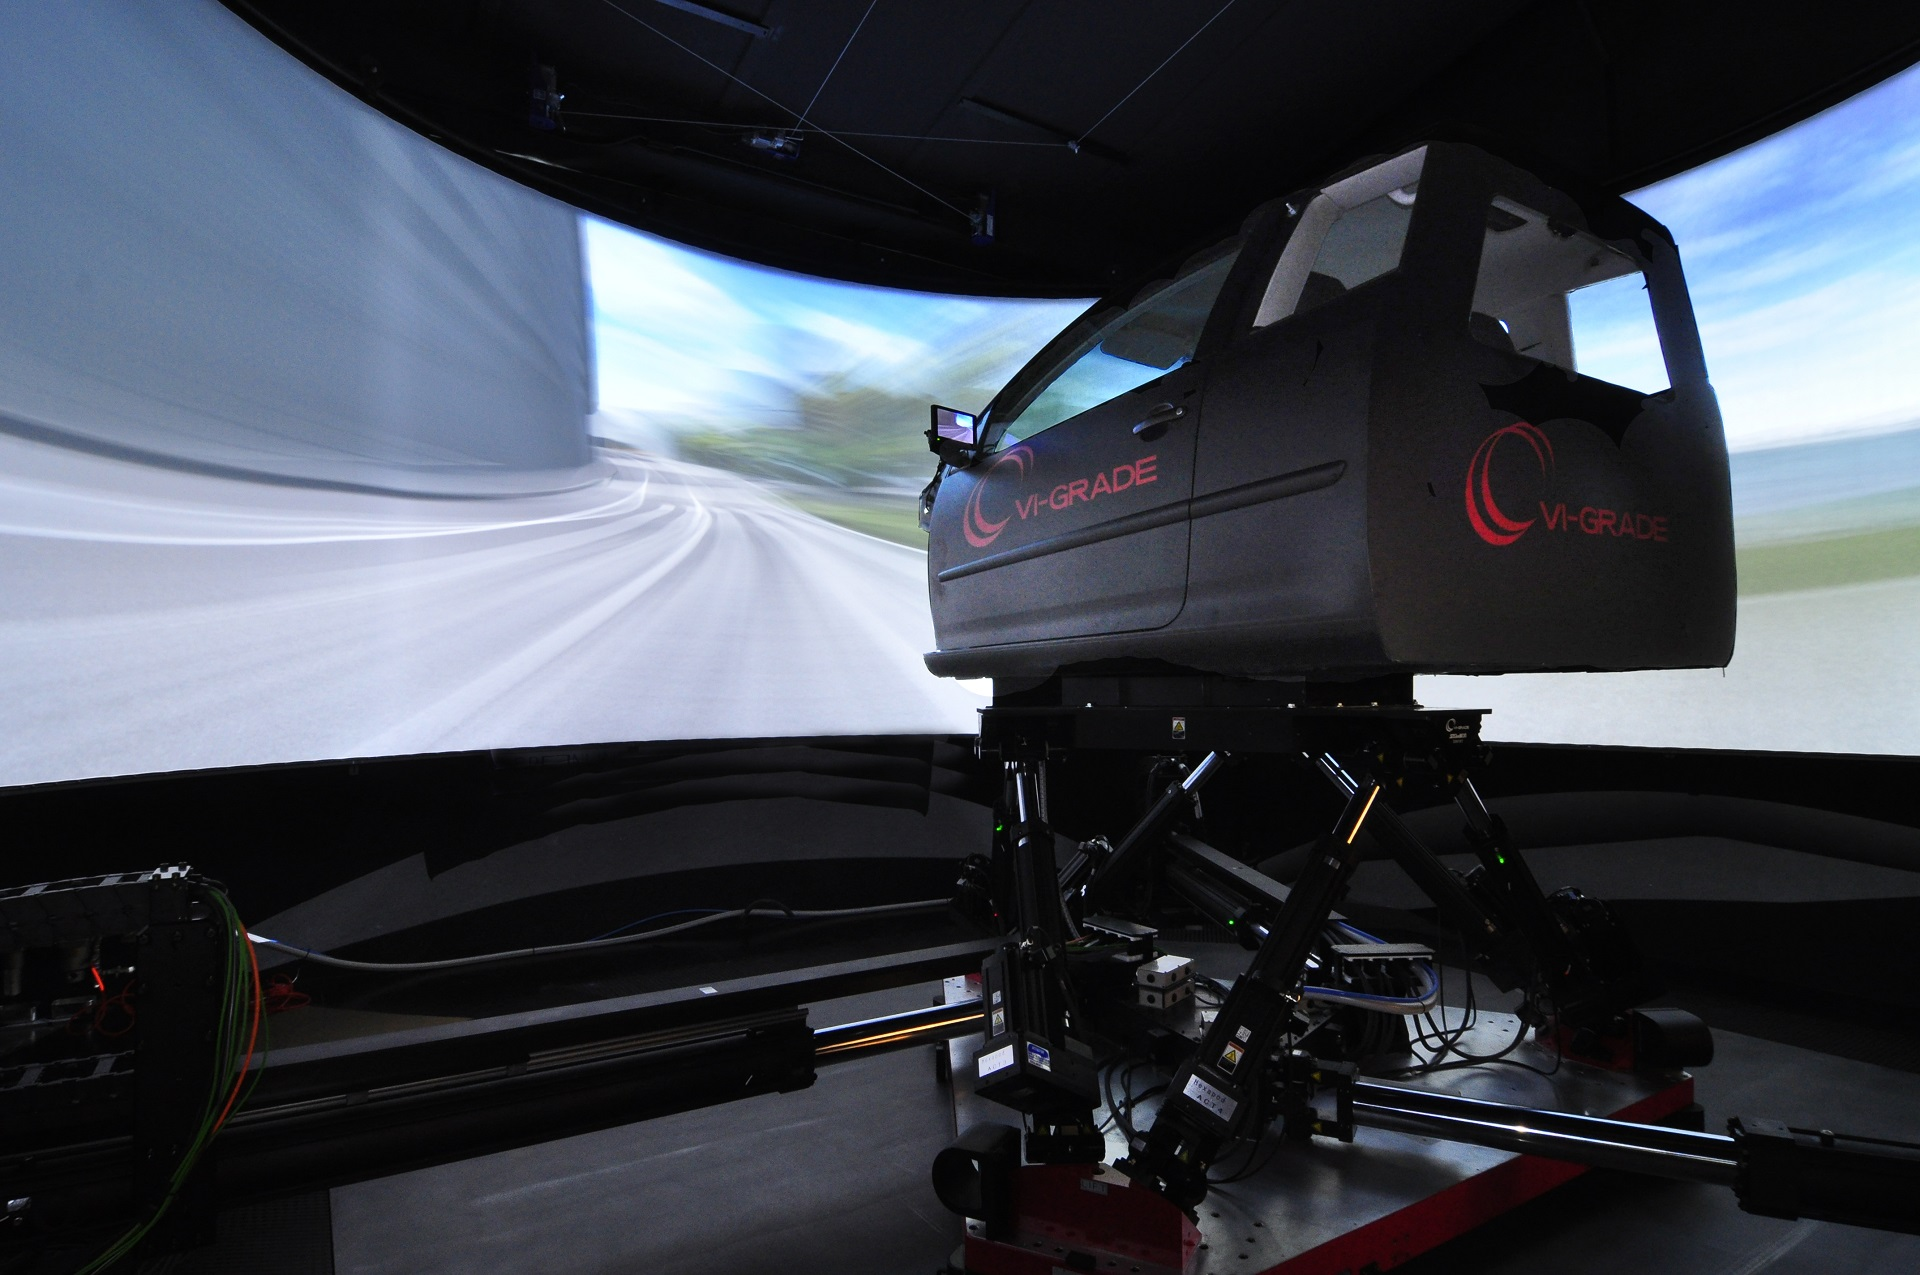 DiM driver-in-motion simulator